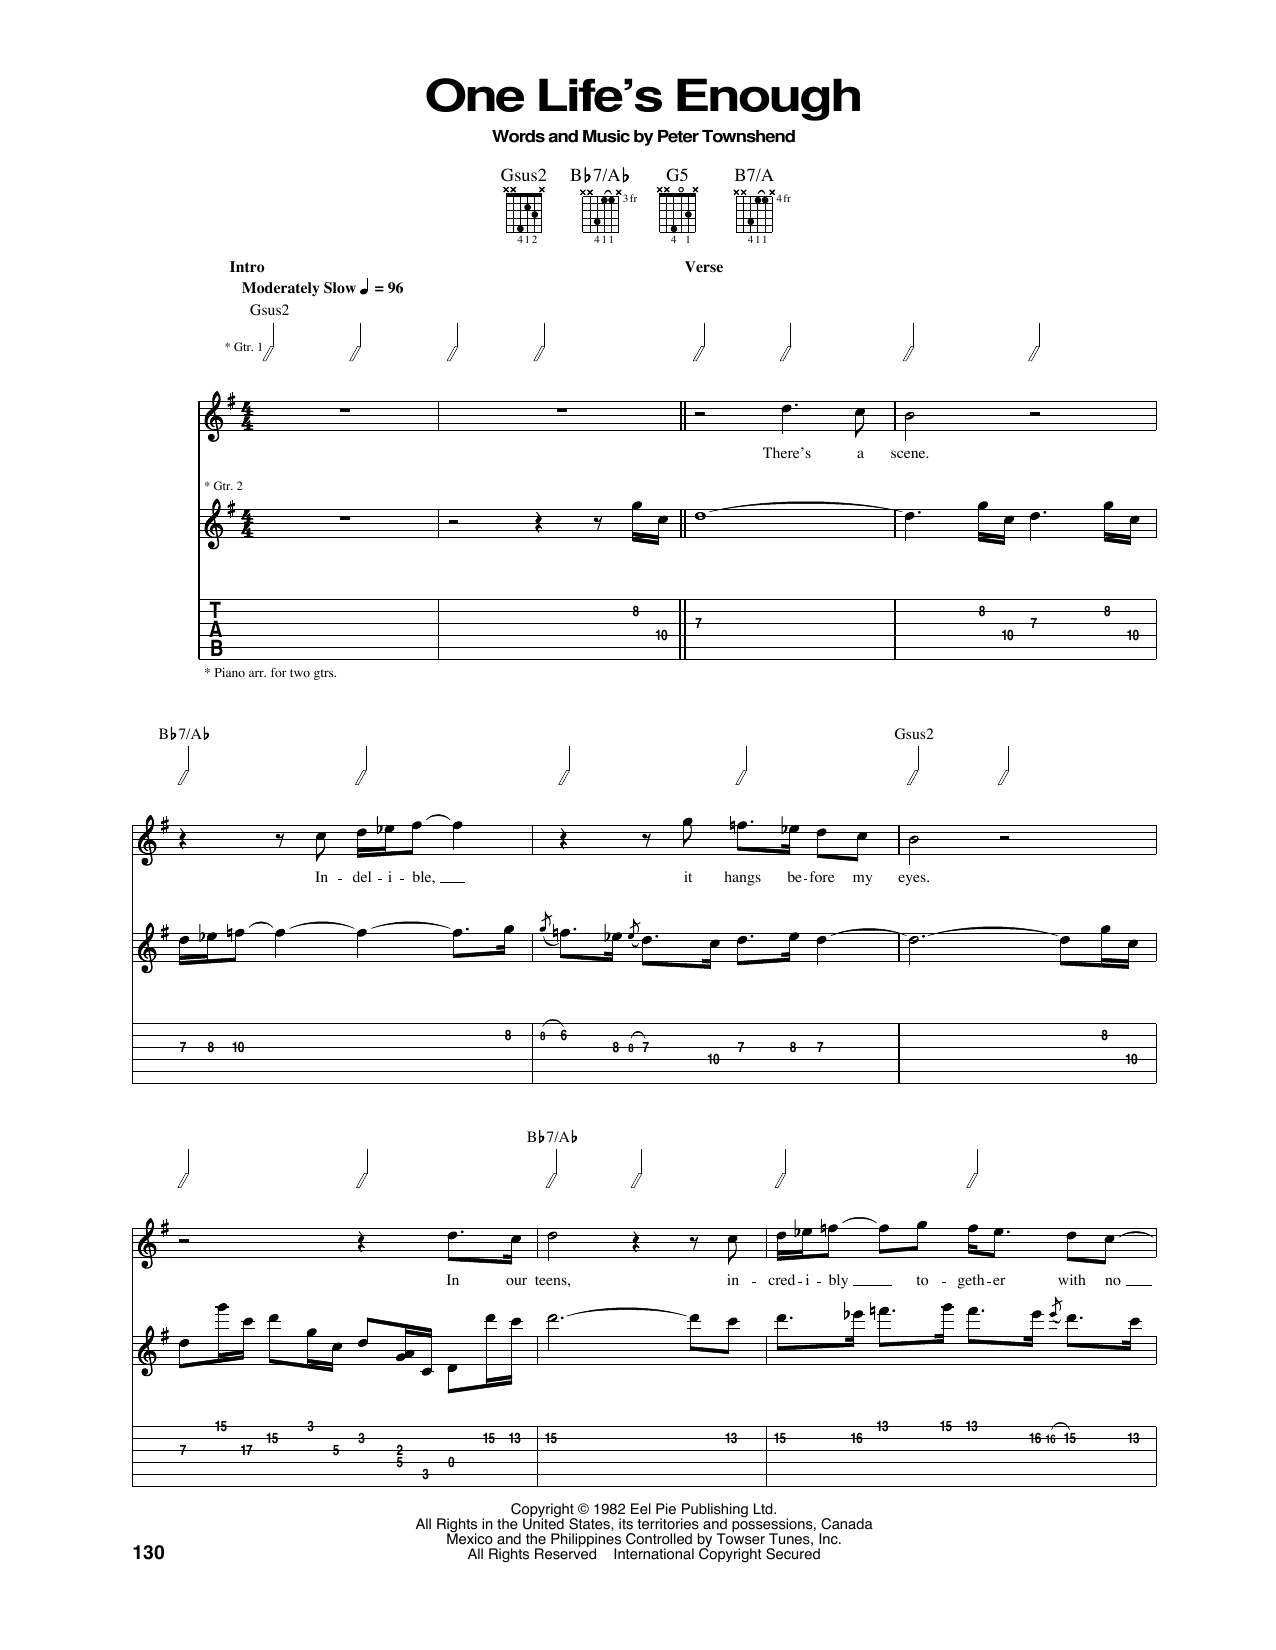 One Life's Enough Sheet Music